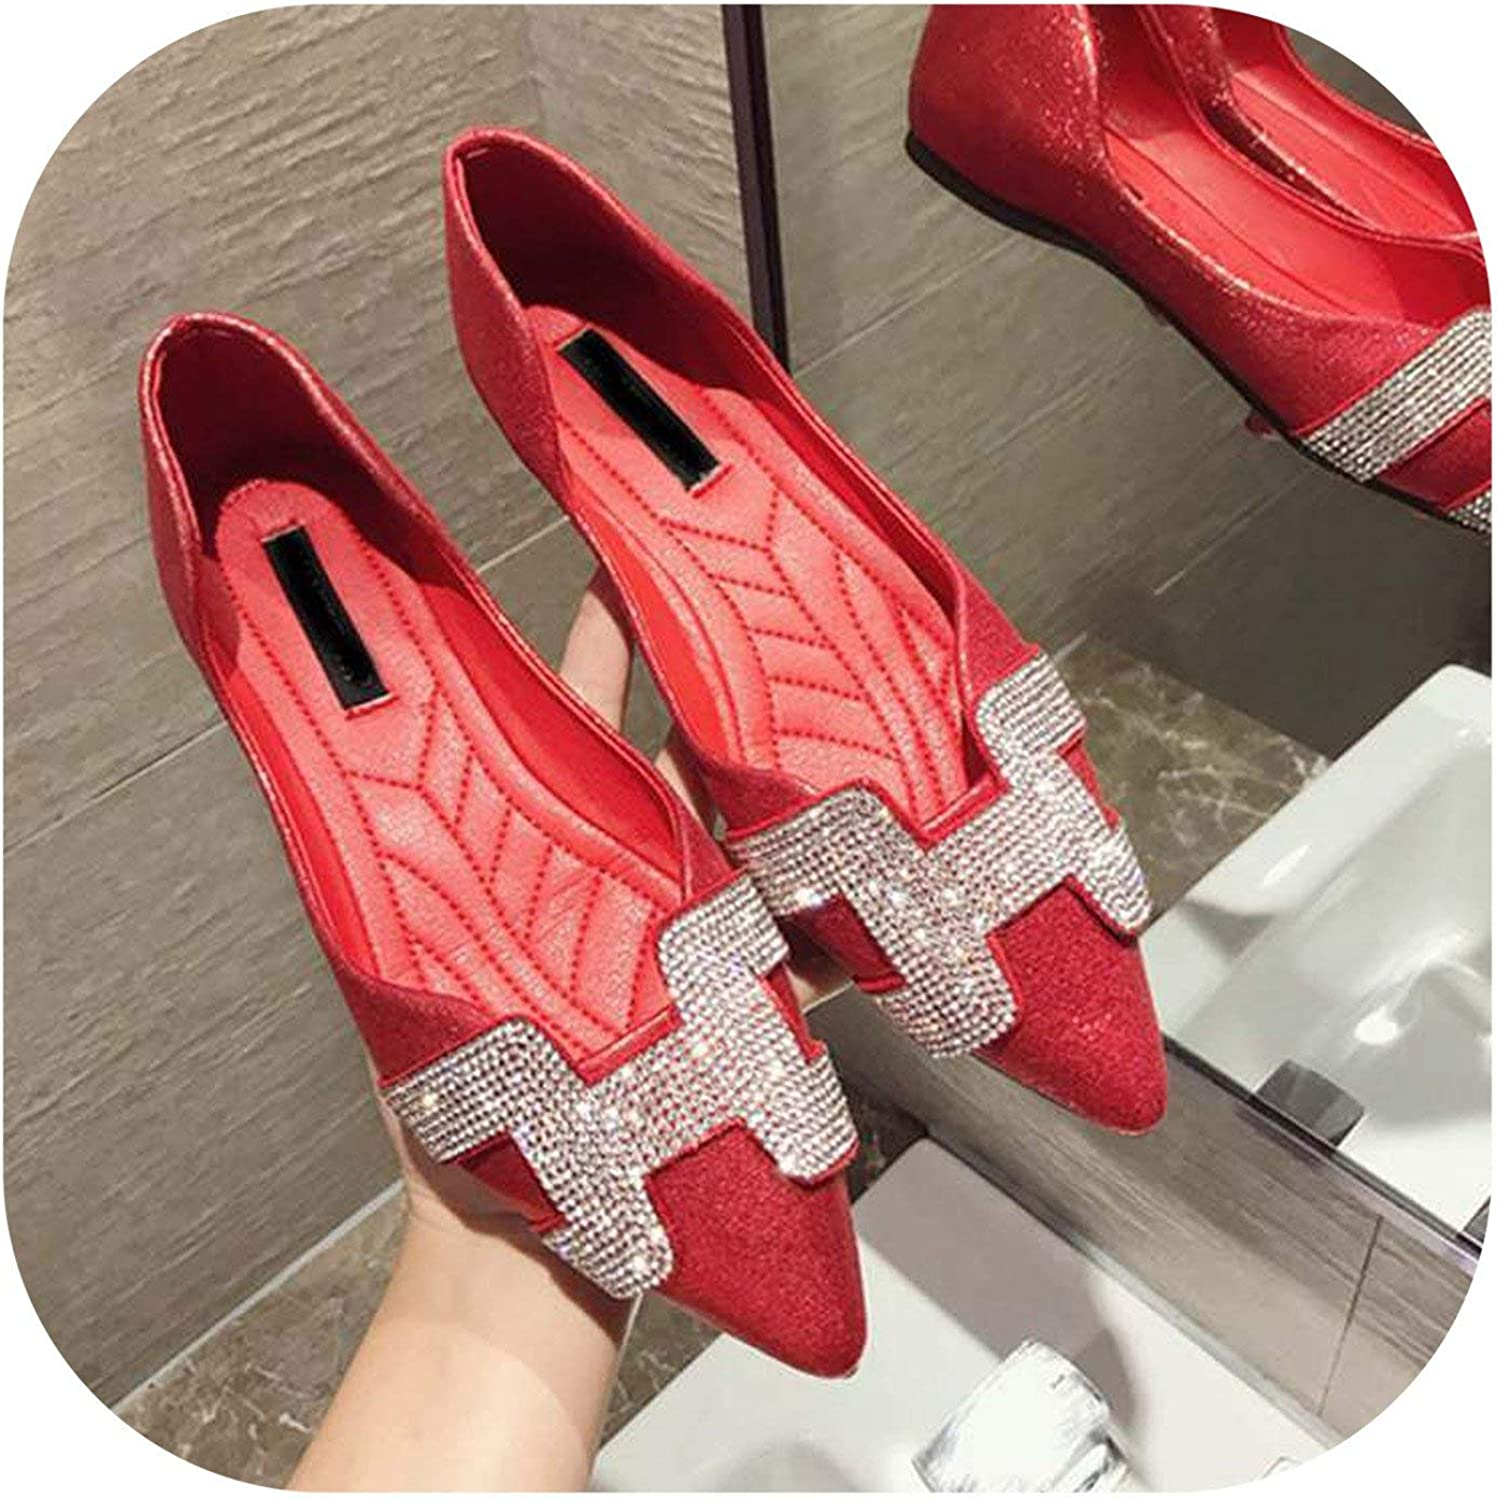 White Island Women Flat Ballet shoes Bling Crystal Pointed Toe Flats shoes Elegant Comfortable Lady Shiny shoes,Red,6